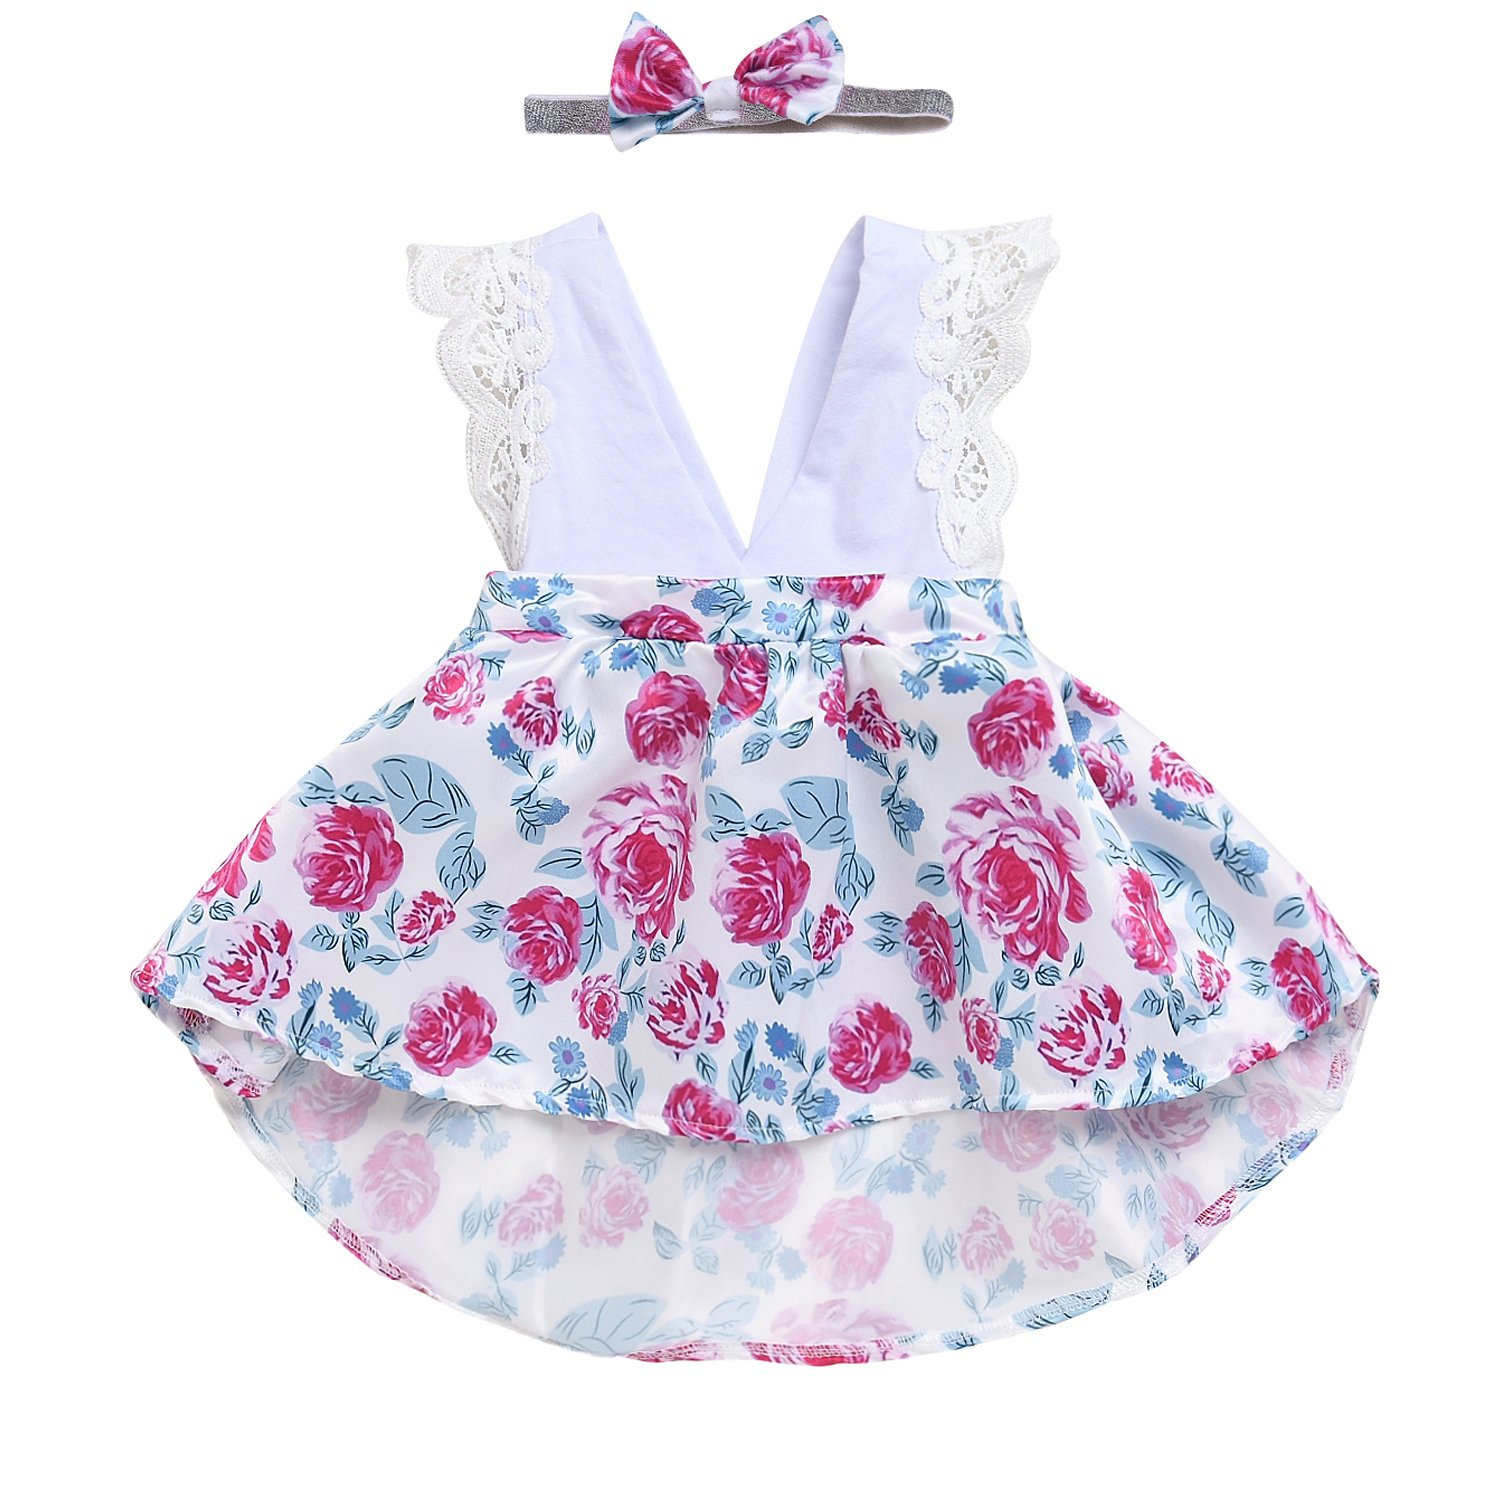 HappyMA Toddler Baby Girl Clothes Floral Dress Lace Ruffle Sleeveless Backless Skirt with Headband 2Pcs Outfit